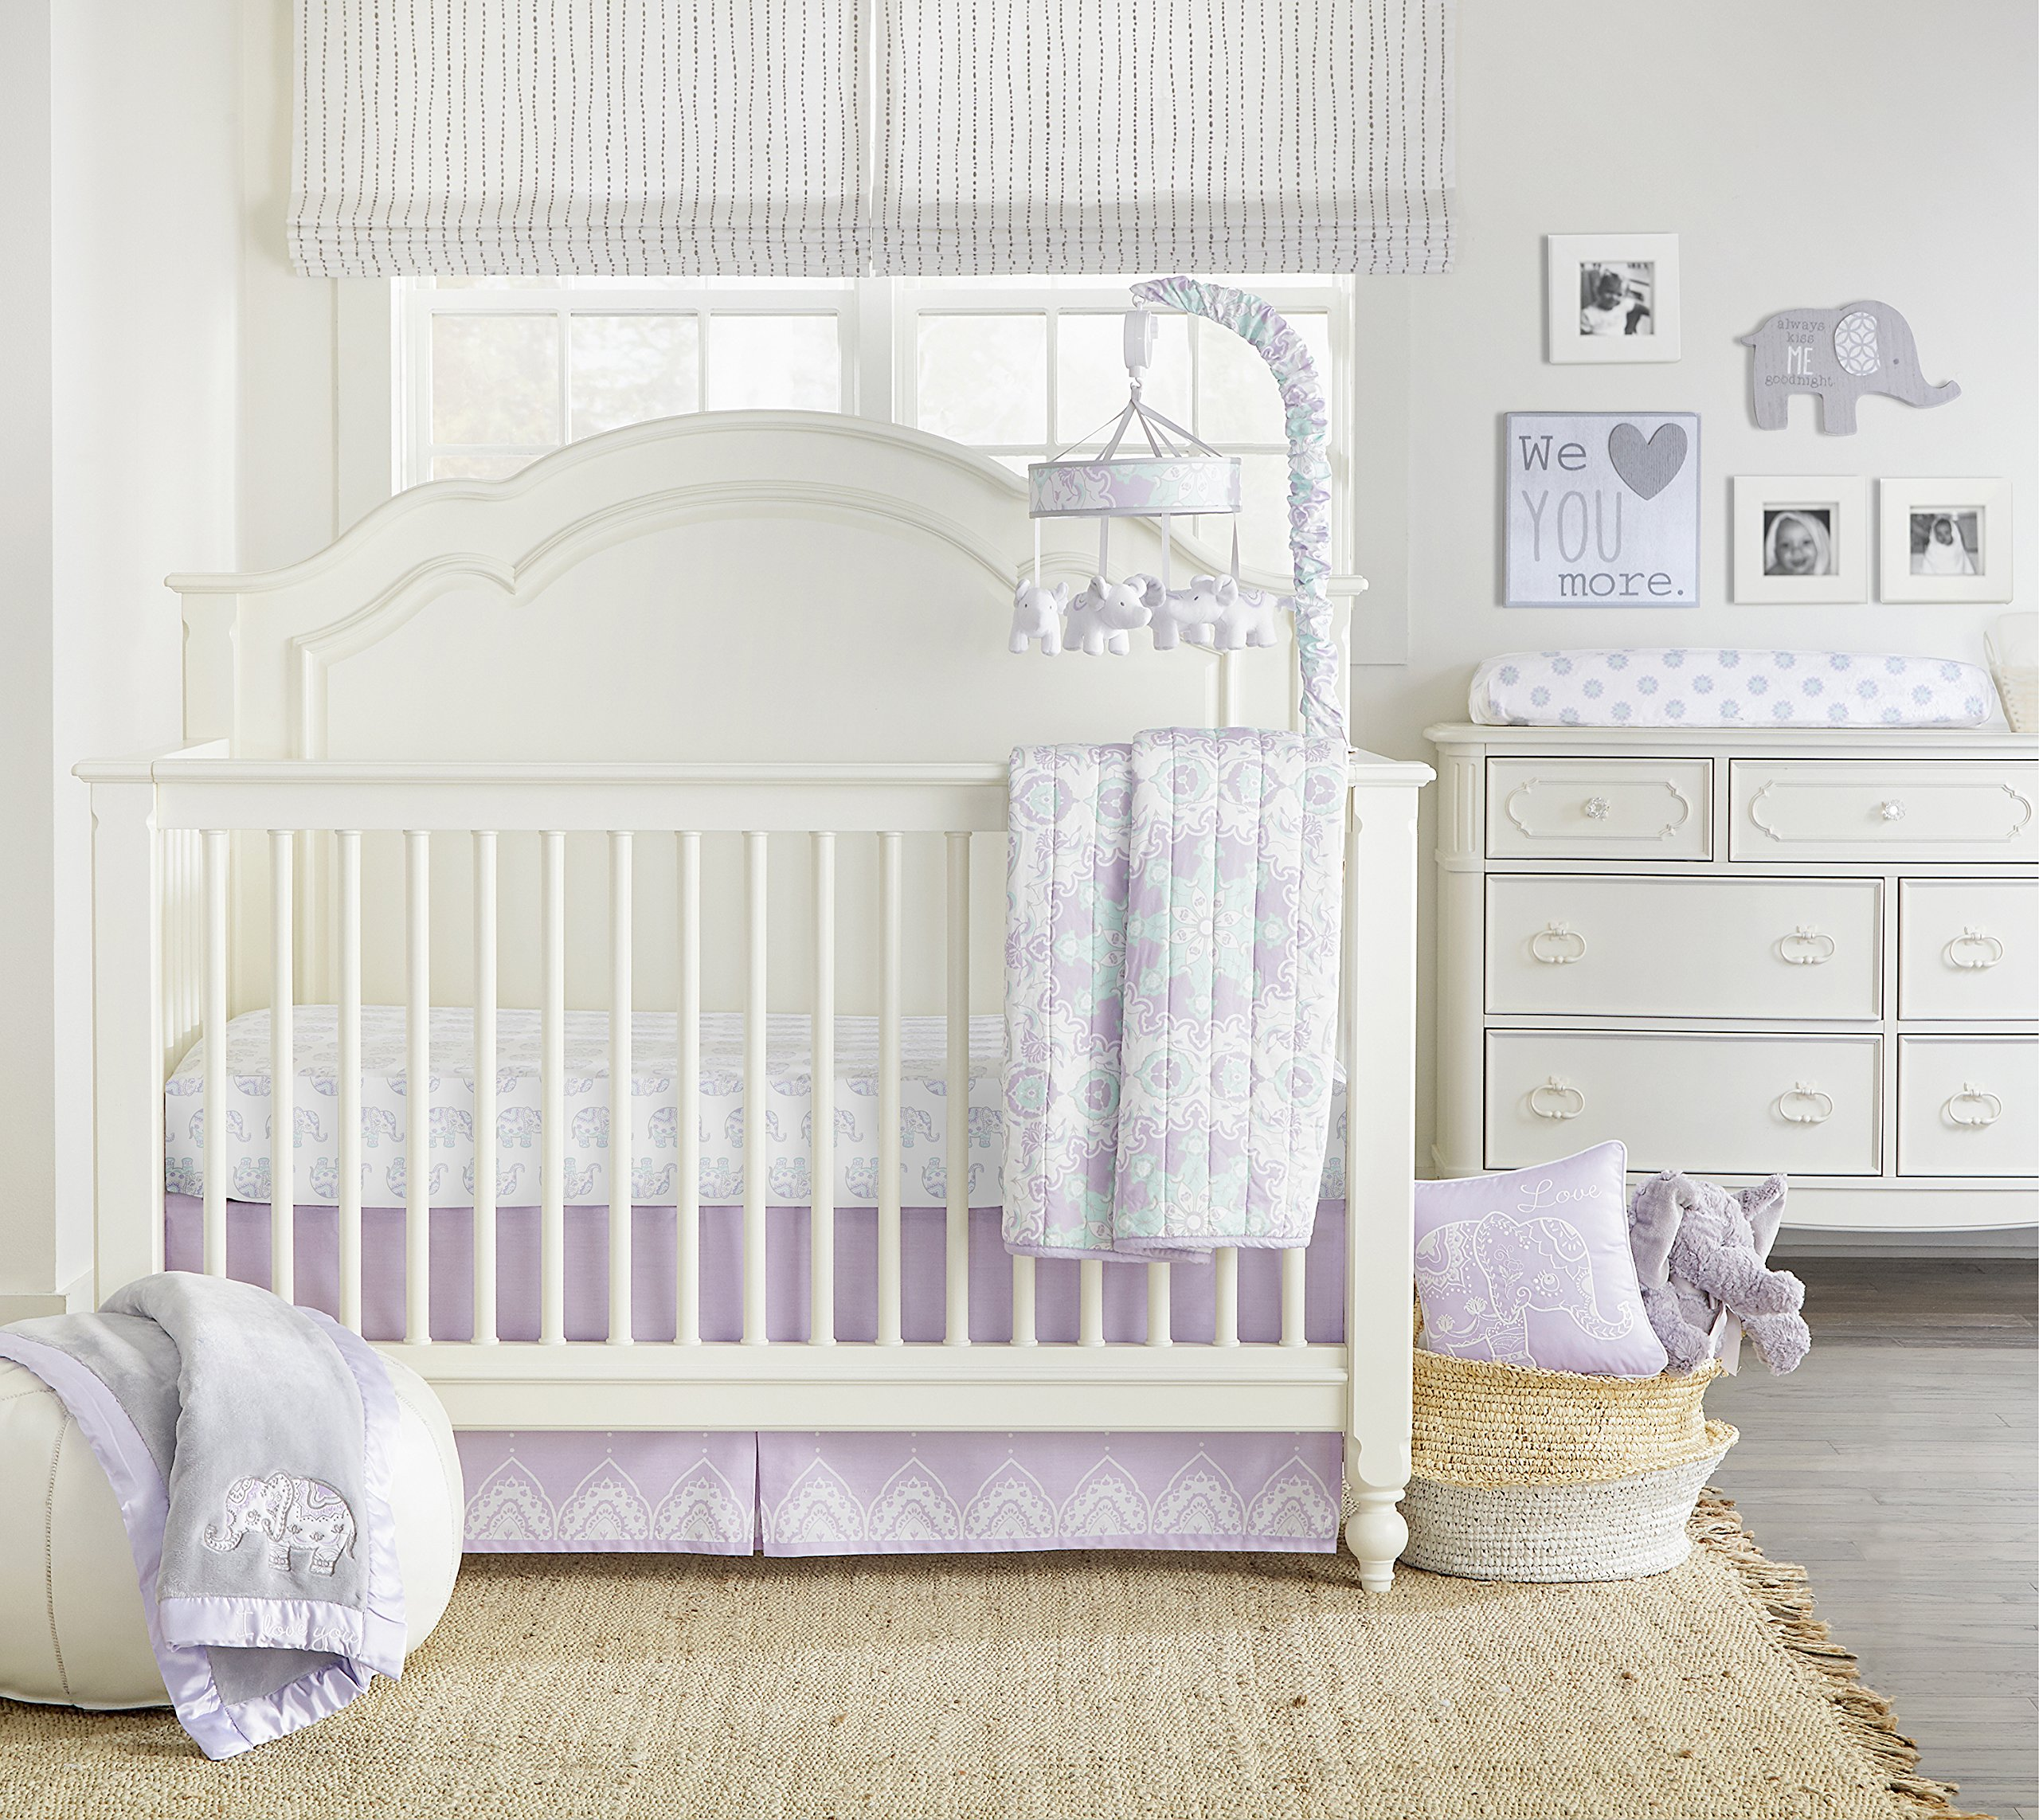 Wendy Bellissimo 4pc Nursery Bedding Baby Crib Bedding Set - Elephant Crib Bedding from the Anya Collection in Lavender and Grey by Wendy Bellissimo